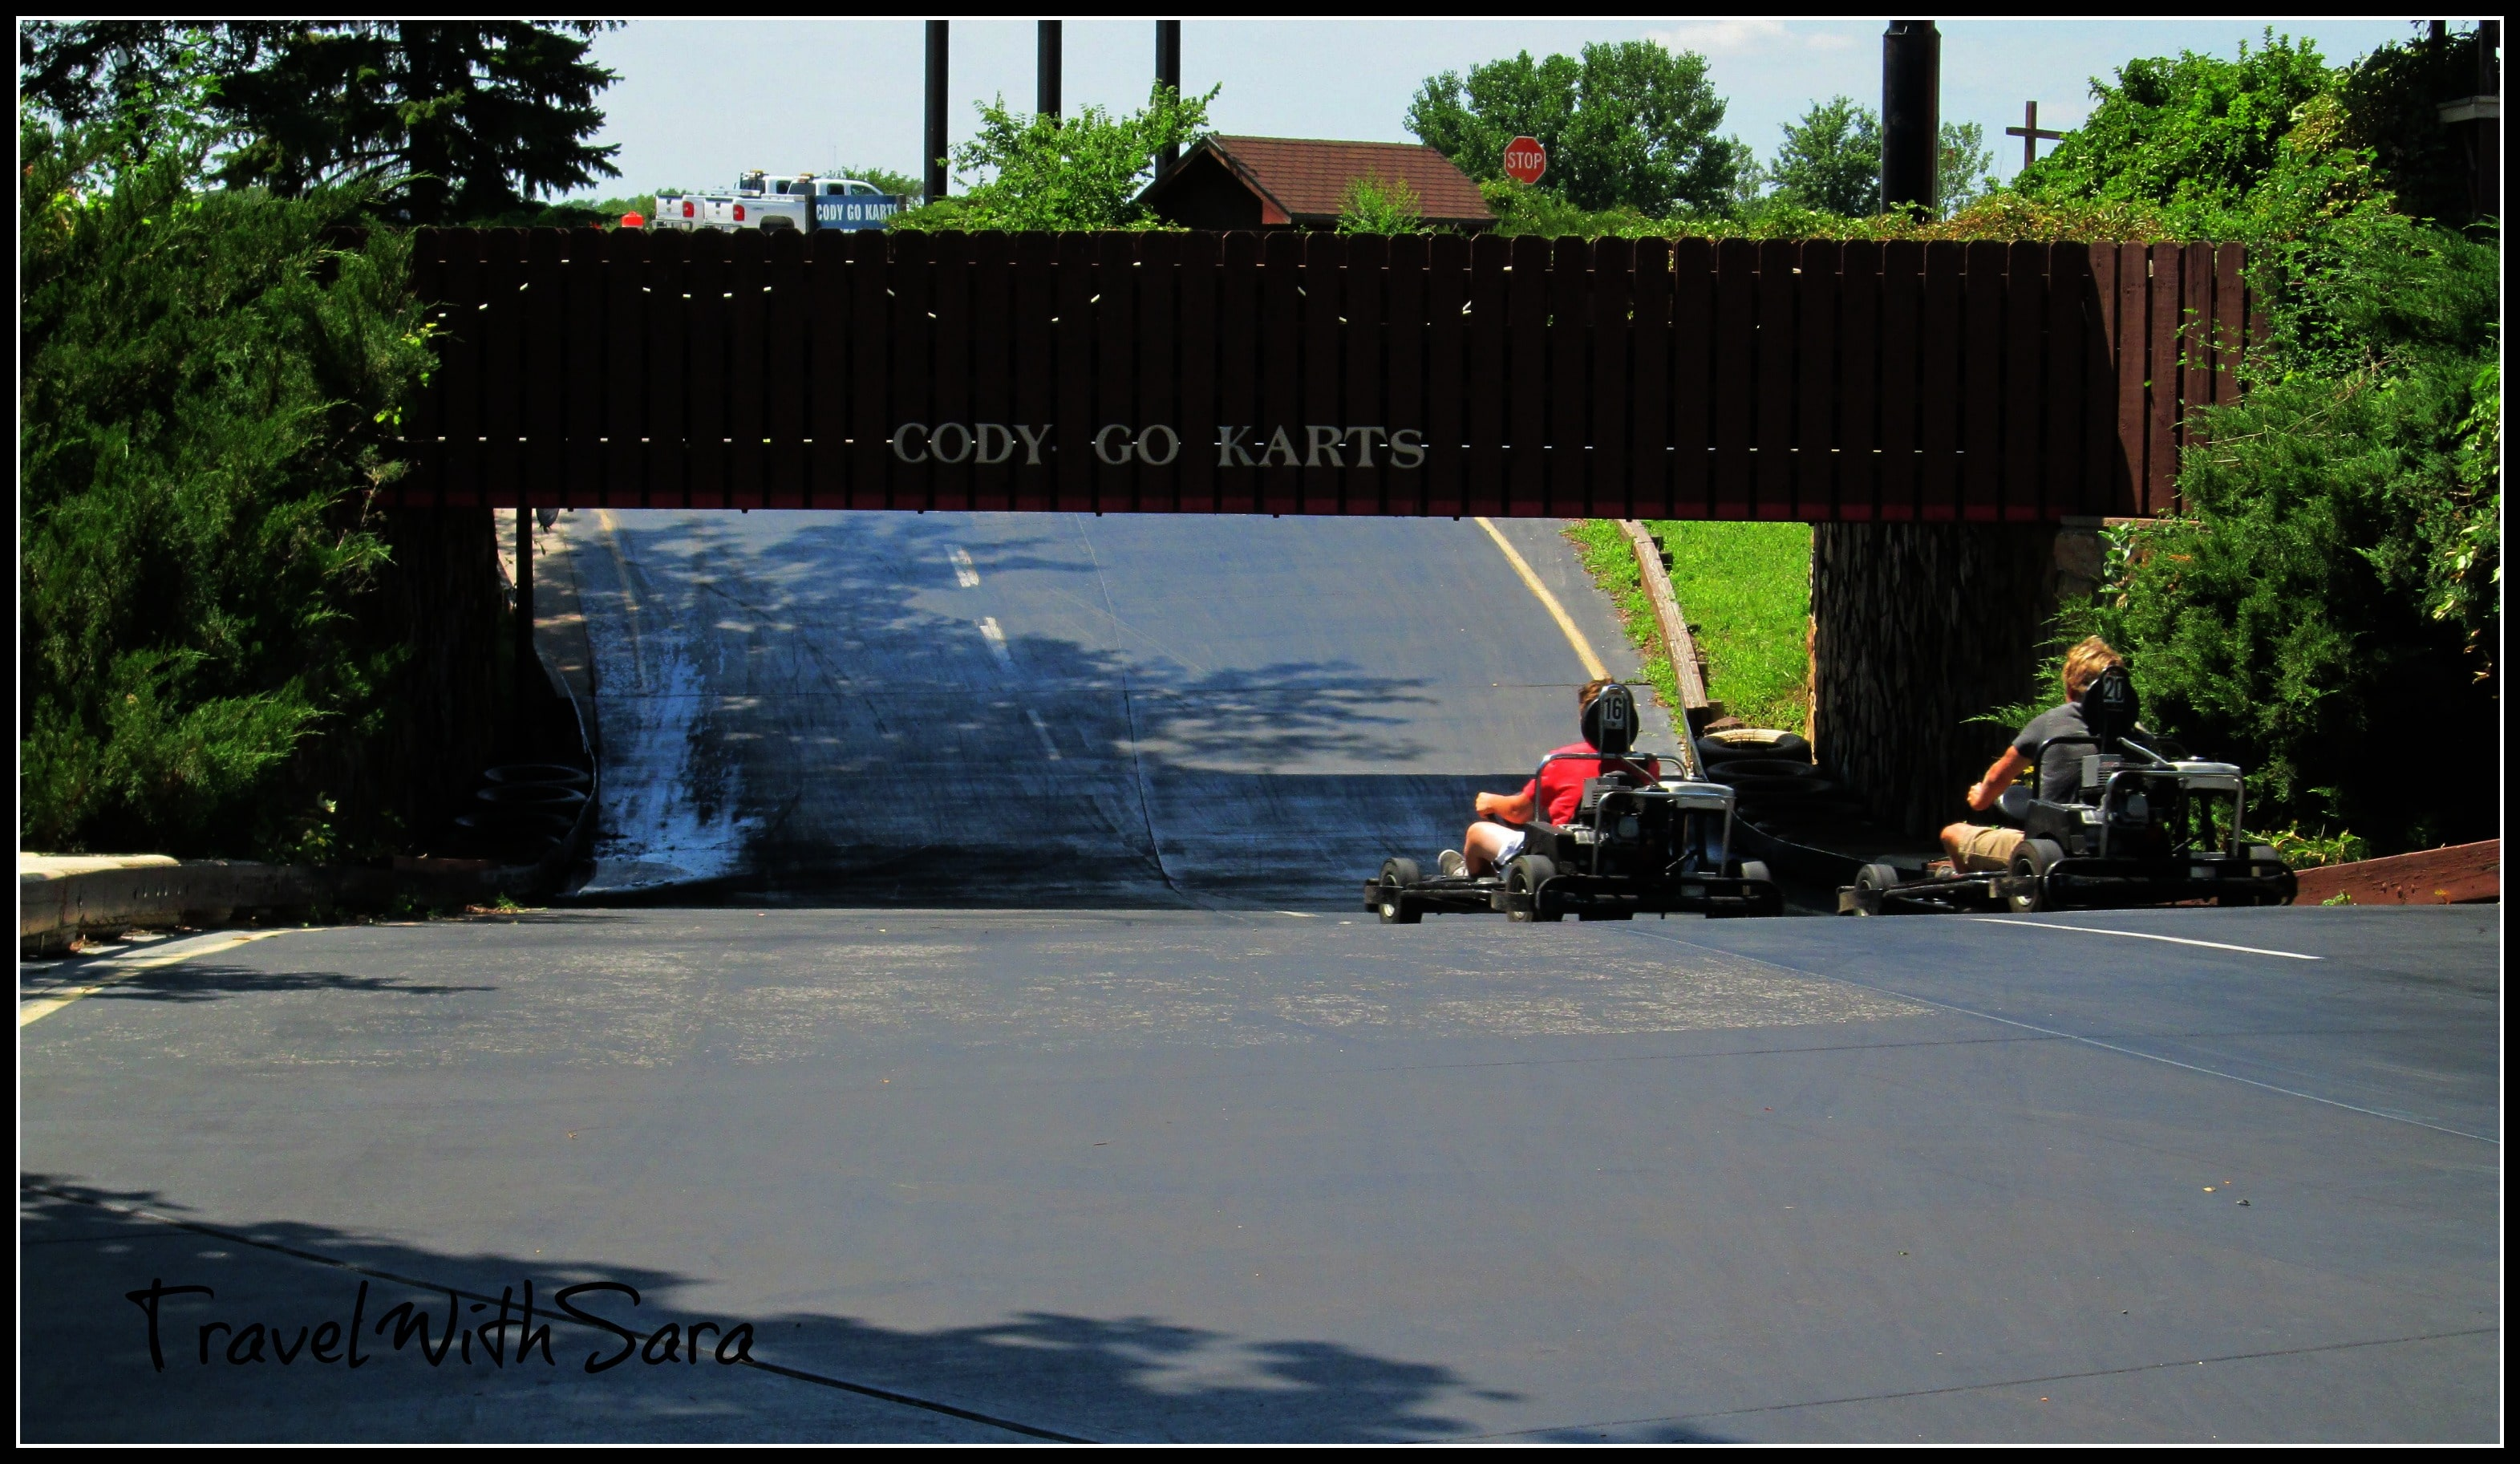 Go Karts Atlanta >> Cody Go Karts: North Platte, Nebraska – Travel With Sara